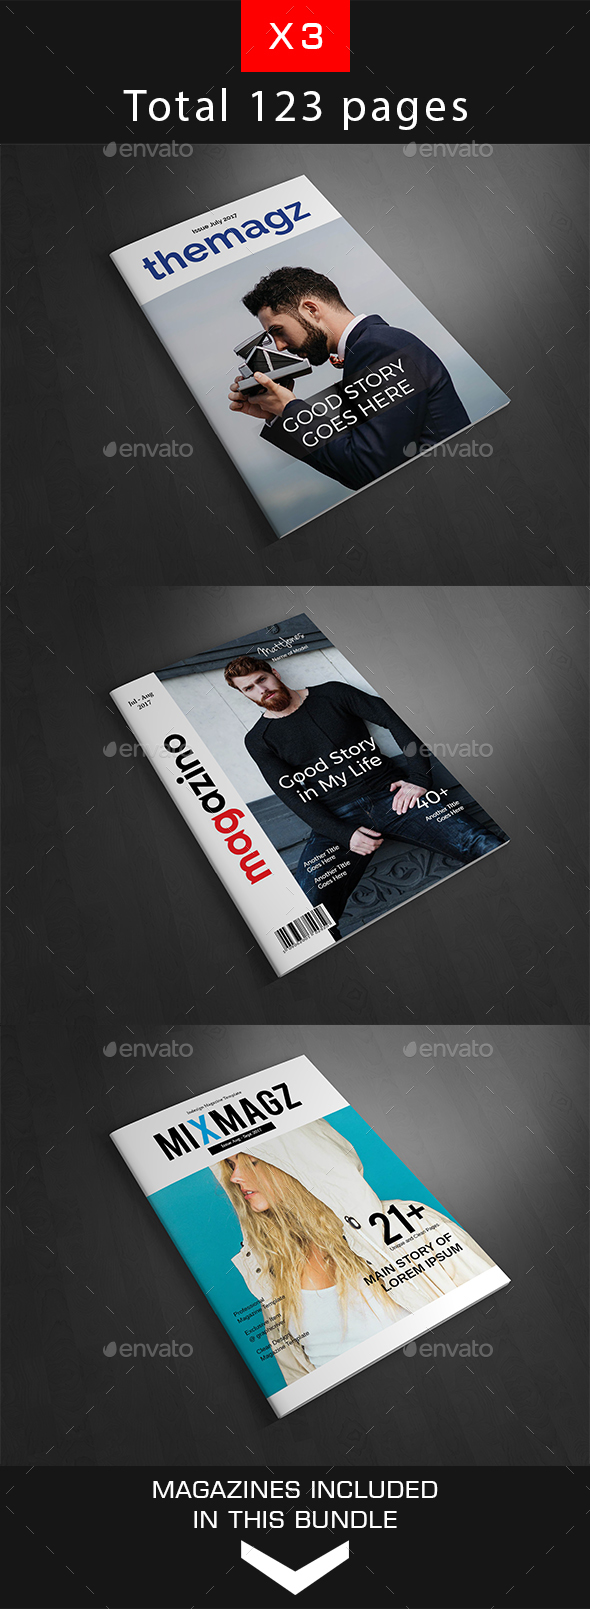 magazine templates from graphicriver